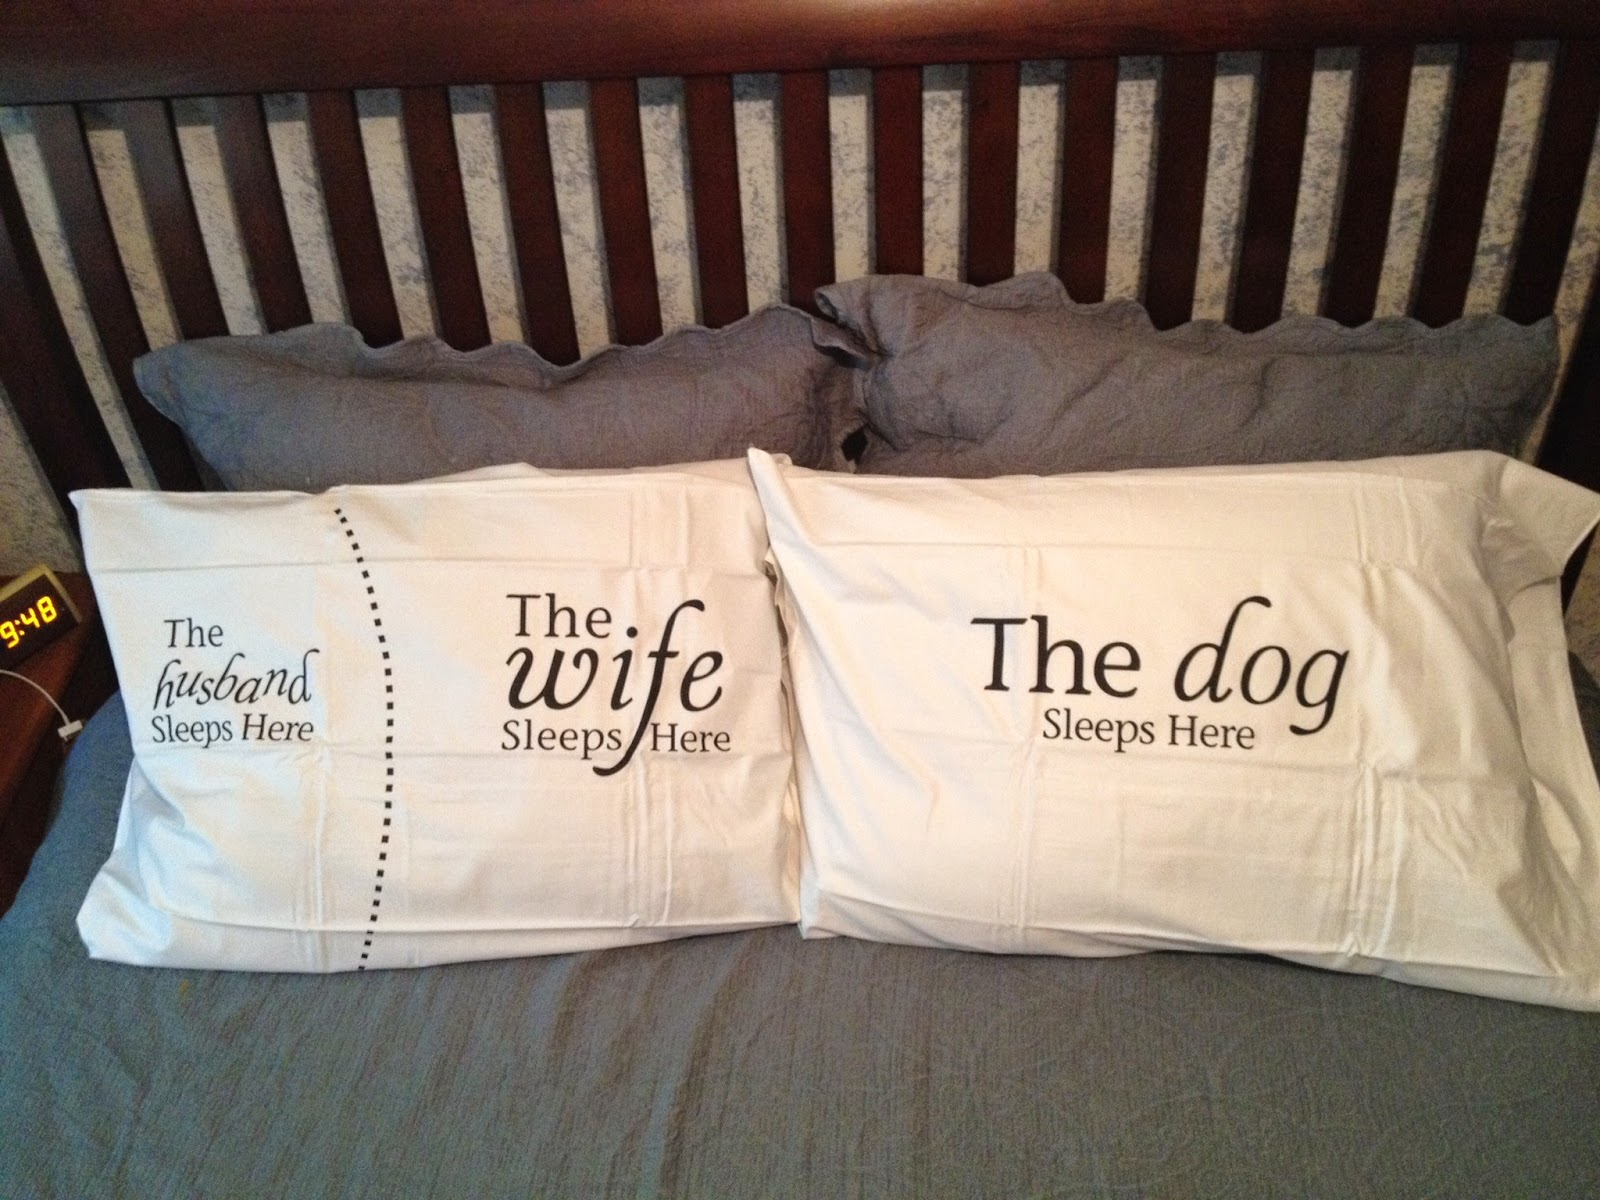 Dog hogging the bed - Are You Like Me Conflicted Because You Enjoy The Idea Of Having The Dog On The Bed But Not Enjoying The Aches And Pains That Result From Being Contorted